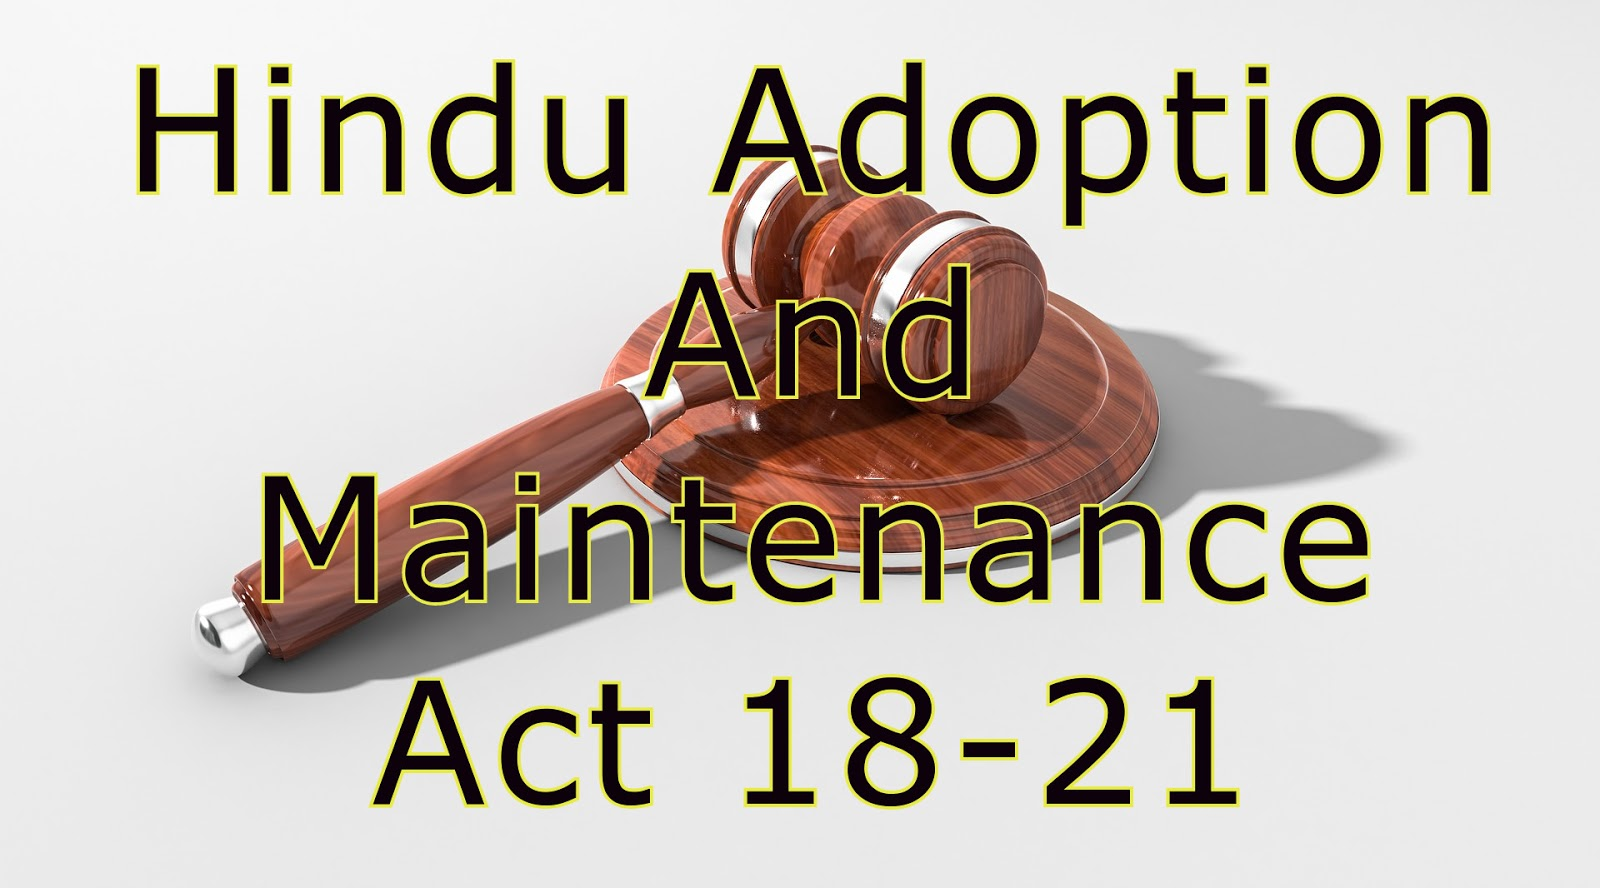 Hindu Adoption and Maintenance Act Section 18–21